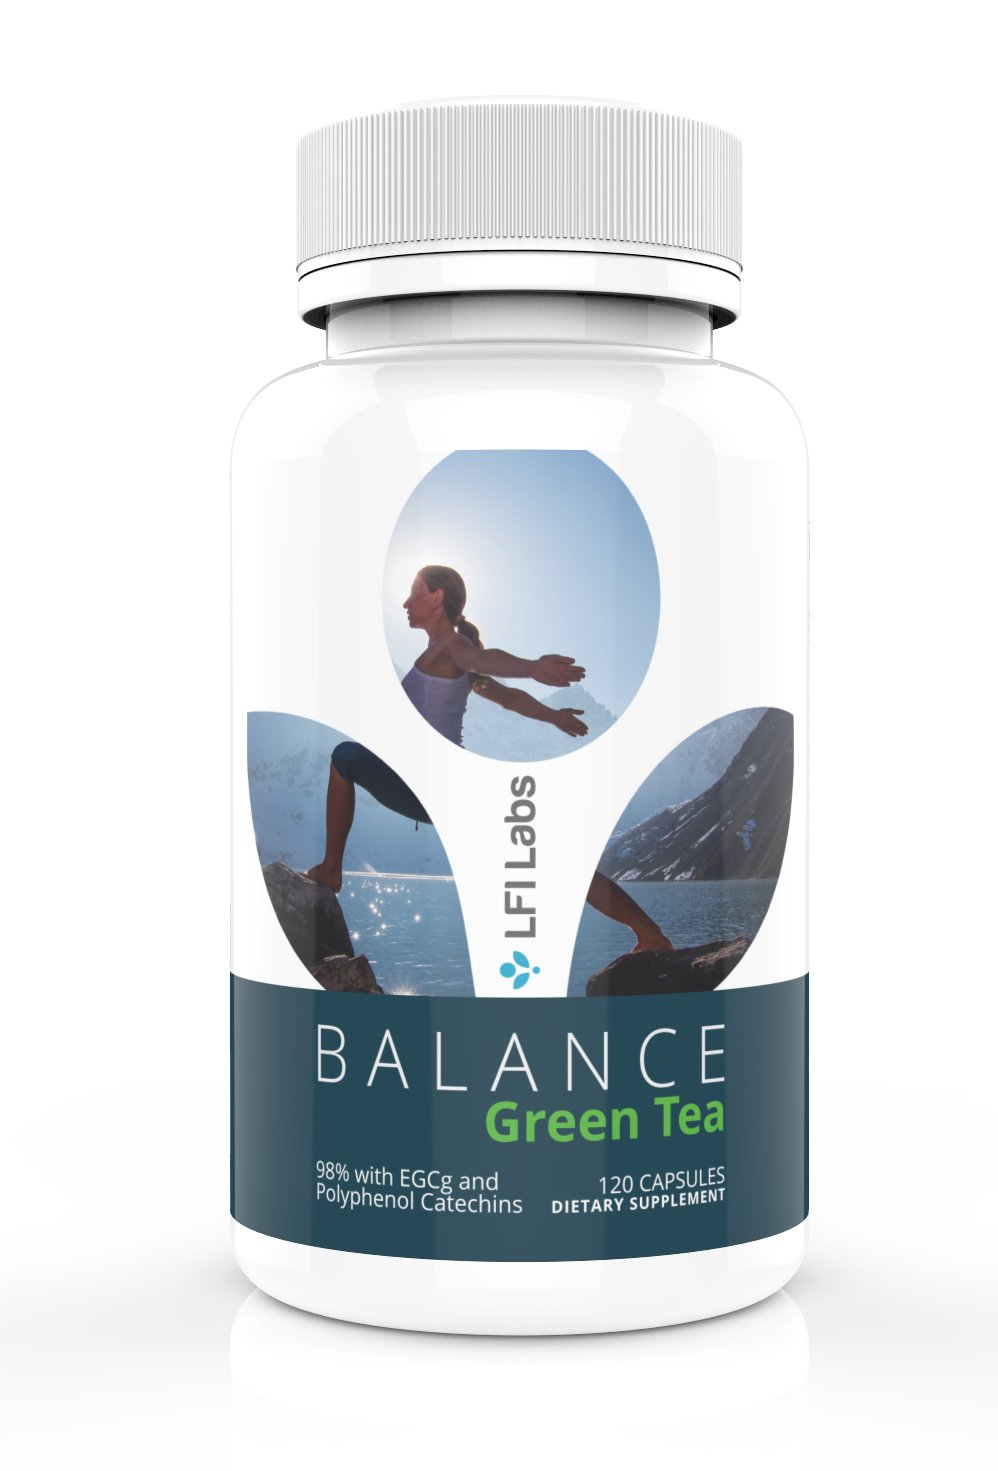 Natural Green Tea Extract Capsules – Polyphenol & Antioxidant Rich for Weight Loss, Appetite Suppressant, & Fat Burner - Metabolism Booster/ Herbal Immune System Booster - GMO Free 120 Pills 500mg